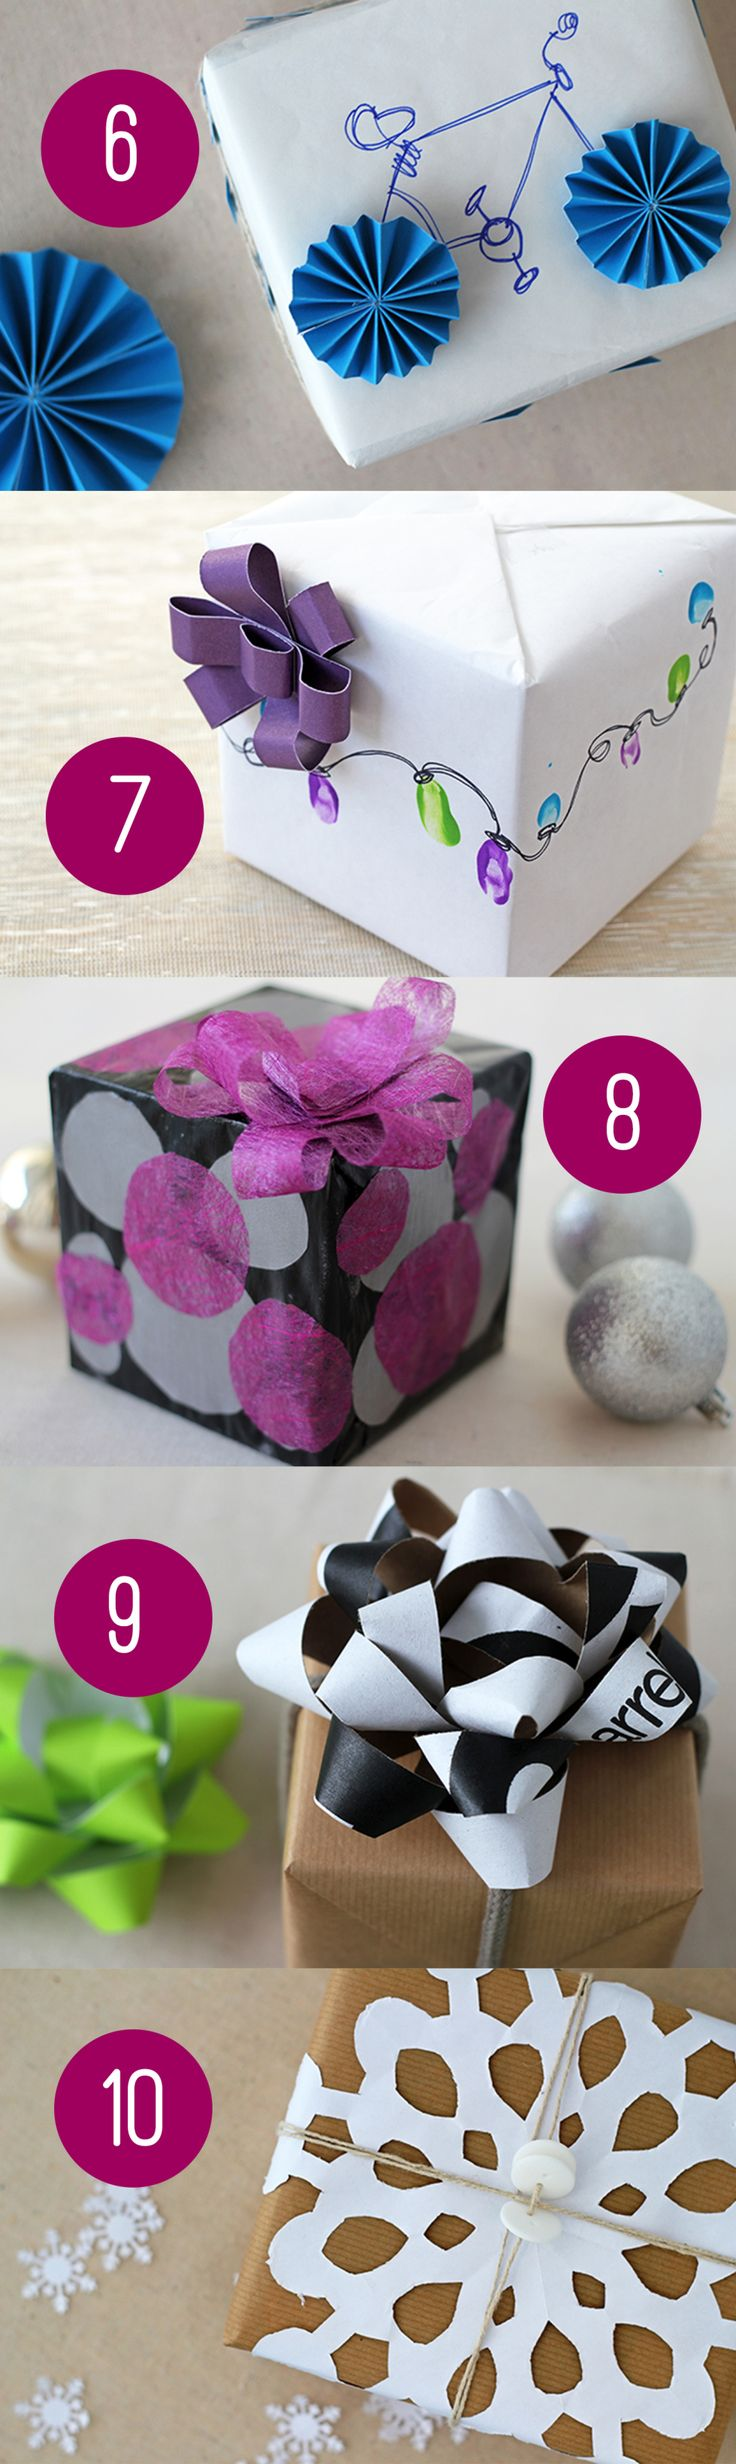 10 fun wrapping ideas to jazz up your holiday packages #wrapping #christmas